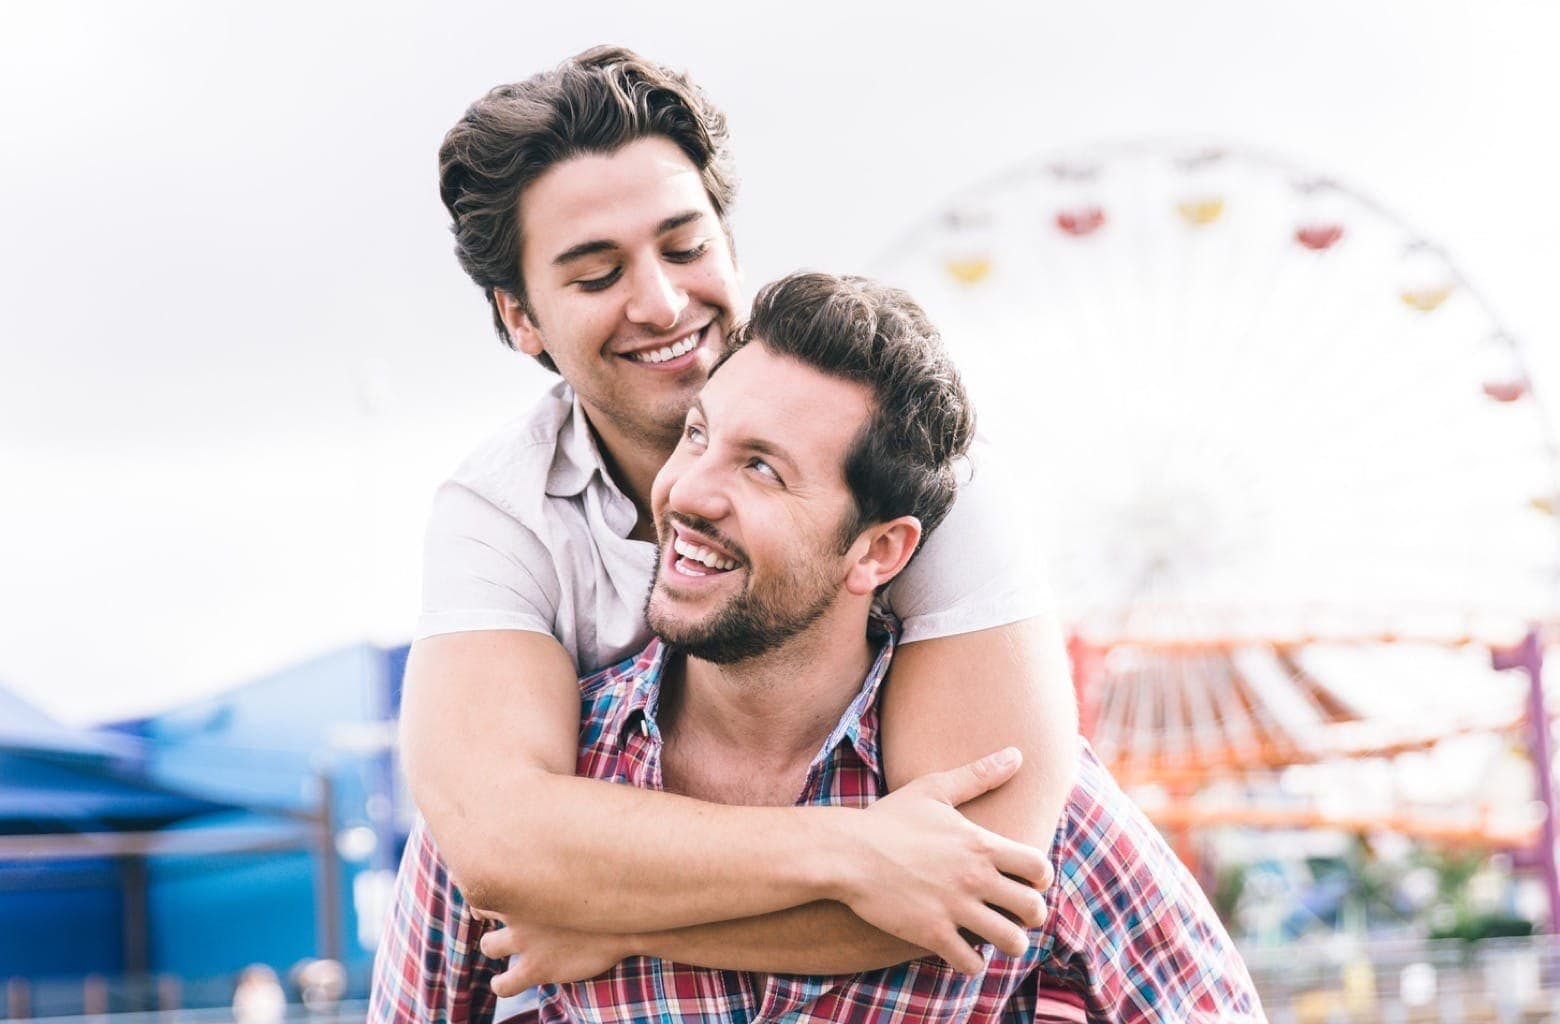 Two men embrace each other outside of a carnival